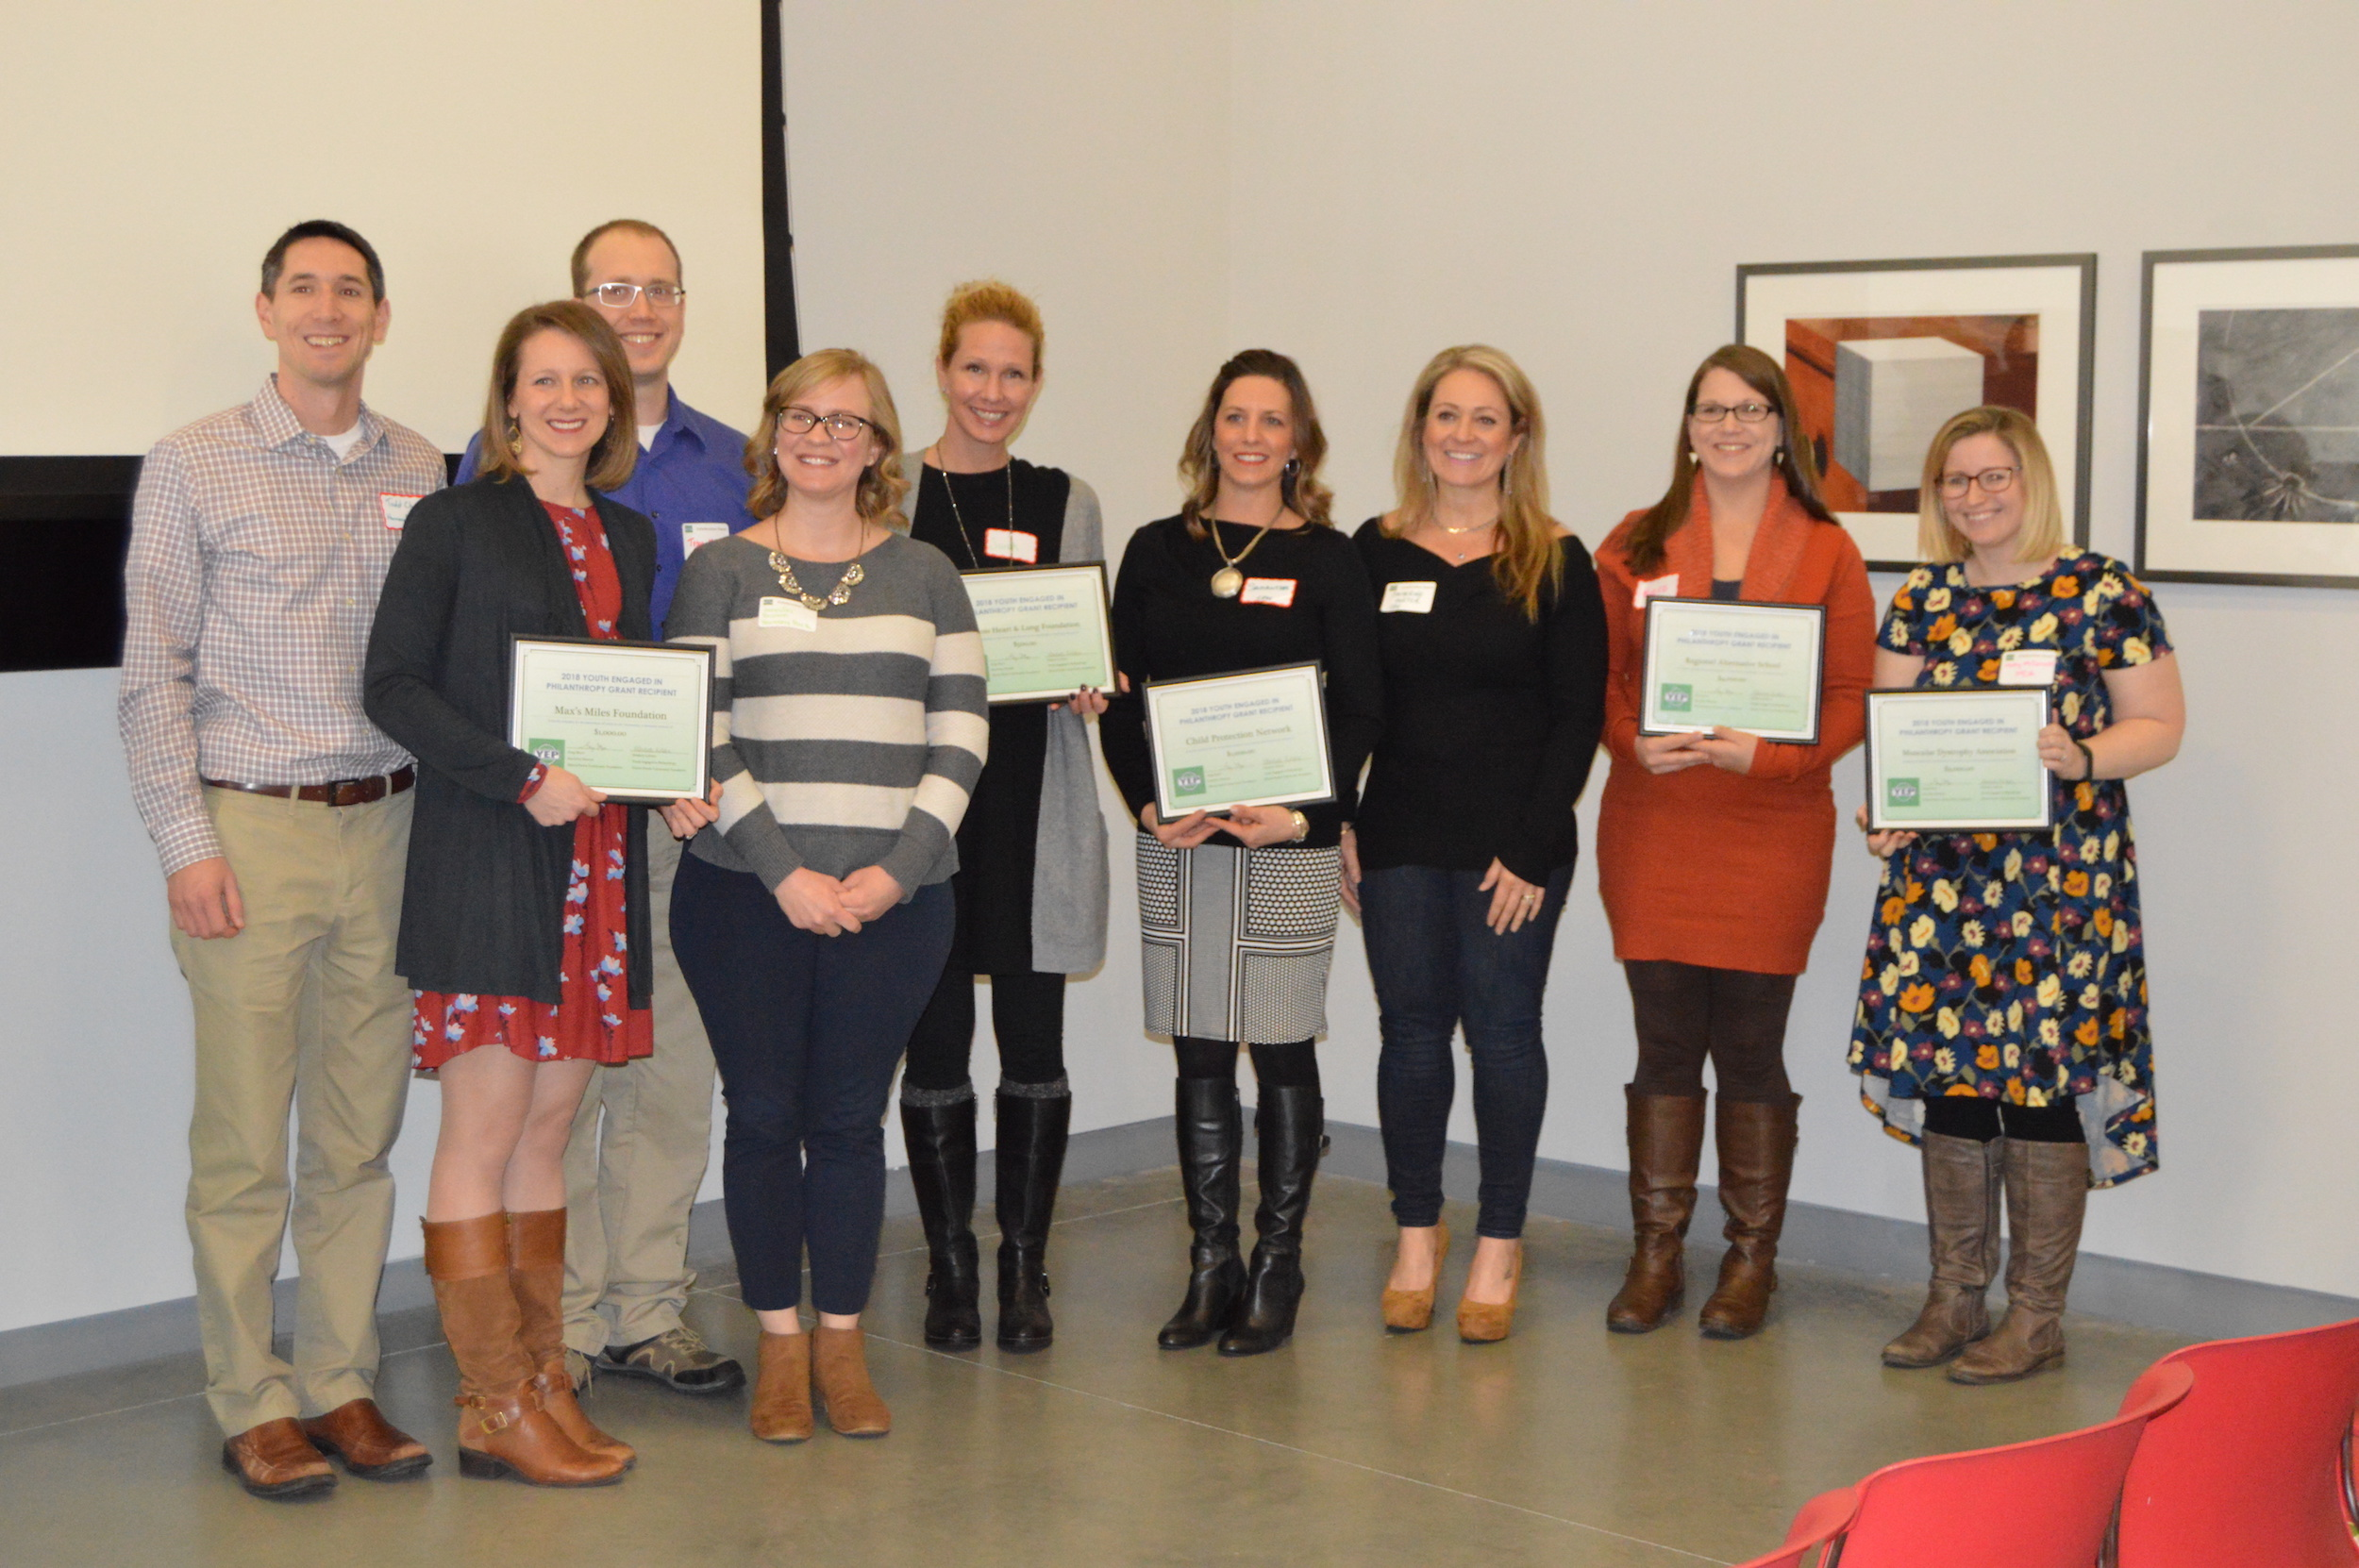 Grant recipients pose with their certificates at the Youth Engaged in Philanthropy (YEP) awards ceremony Sunday afternoon at University Galleries in Uptown Normal. (Image Credit: Breanna Grow)